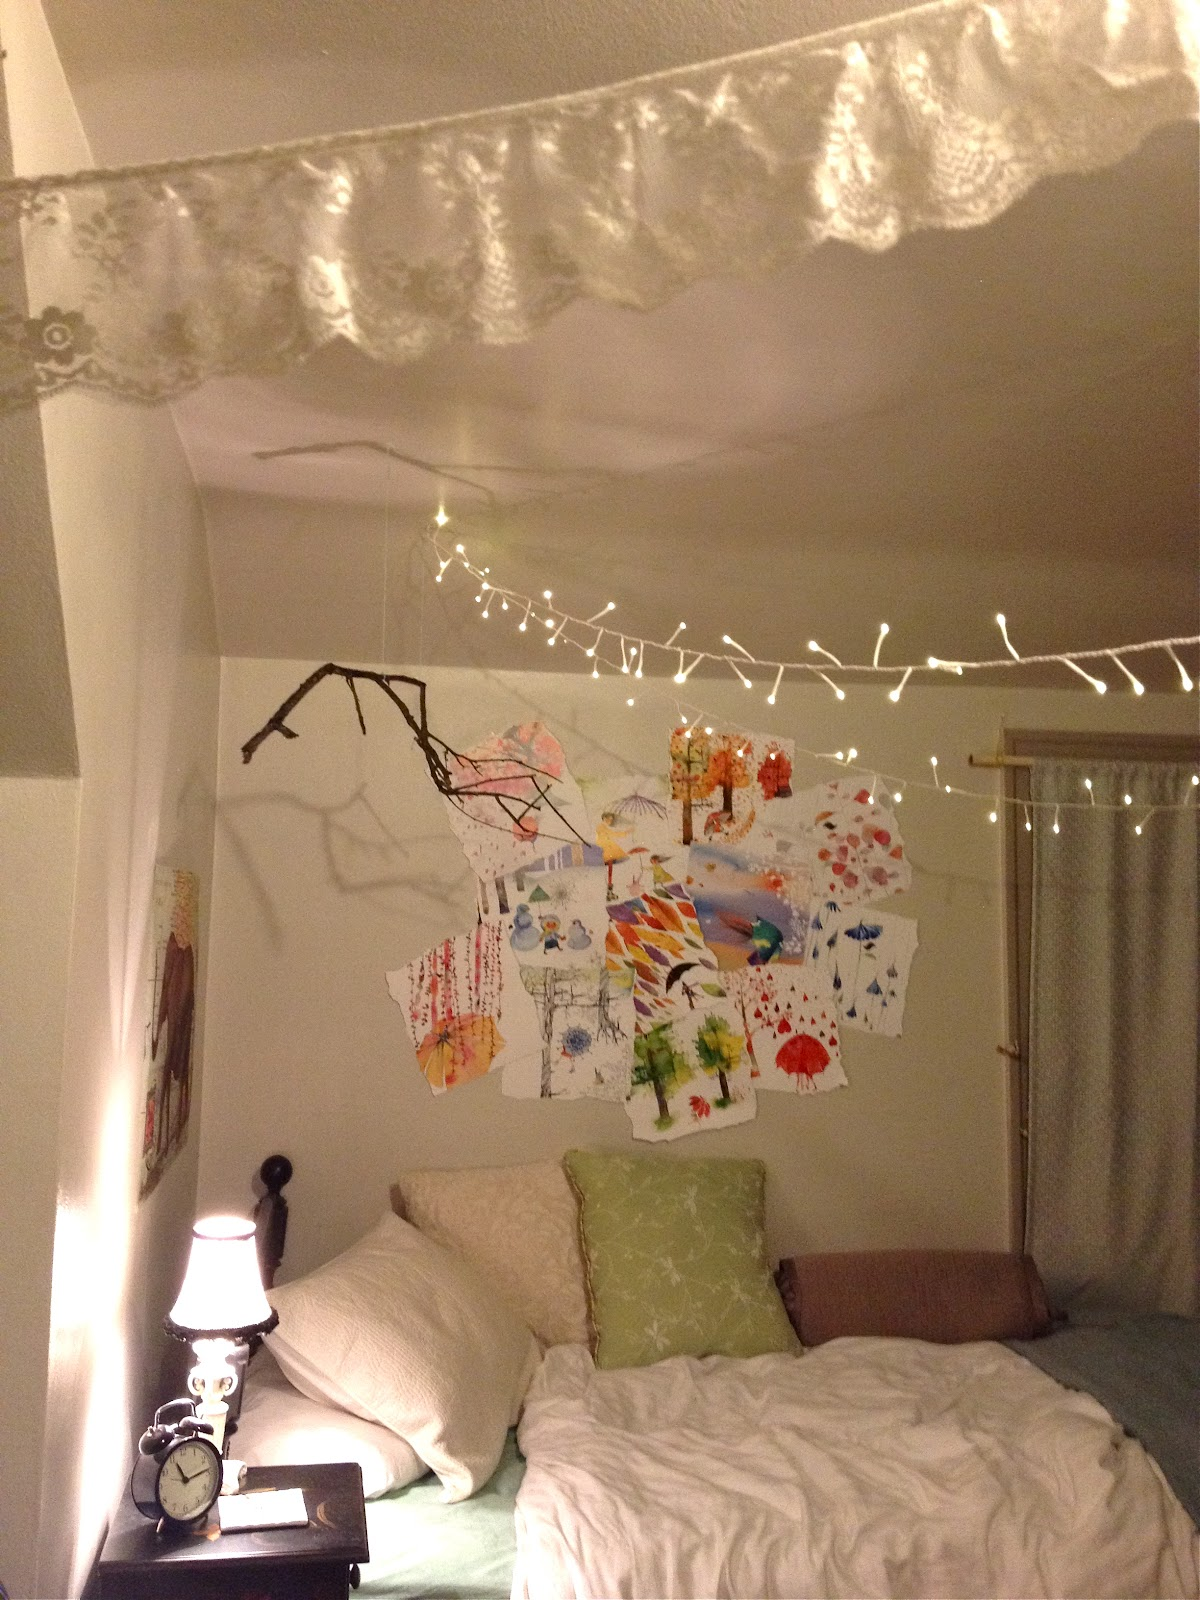 Courtney lane my seattle home part 1 details of my bedroom - String lights for bedroom ...